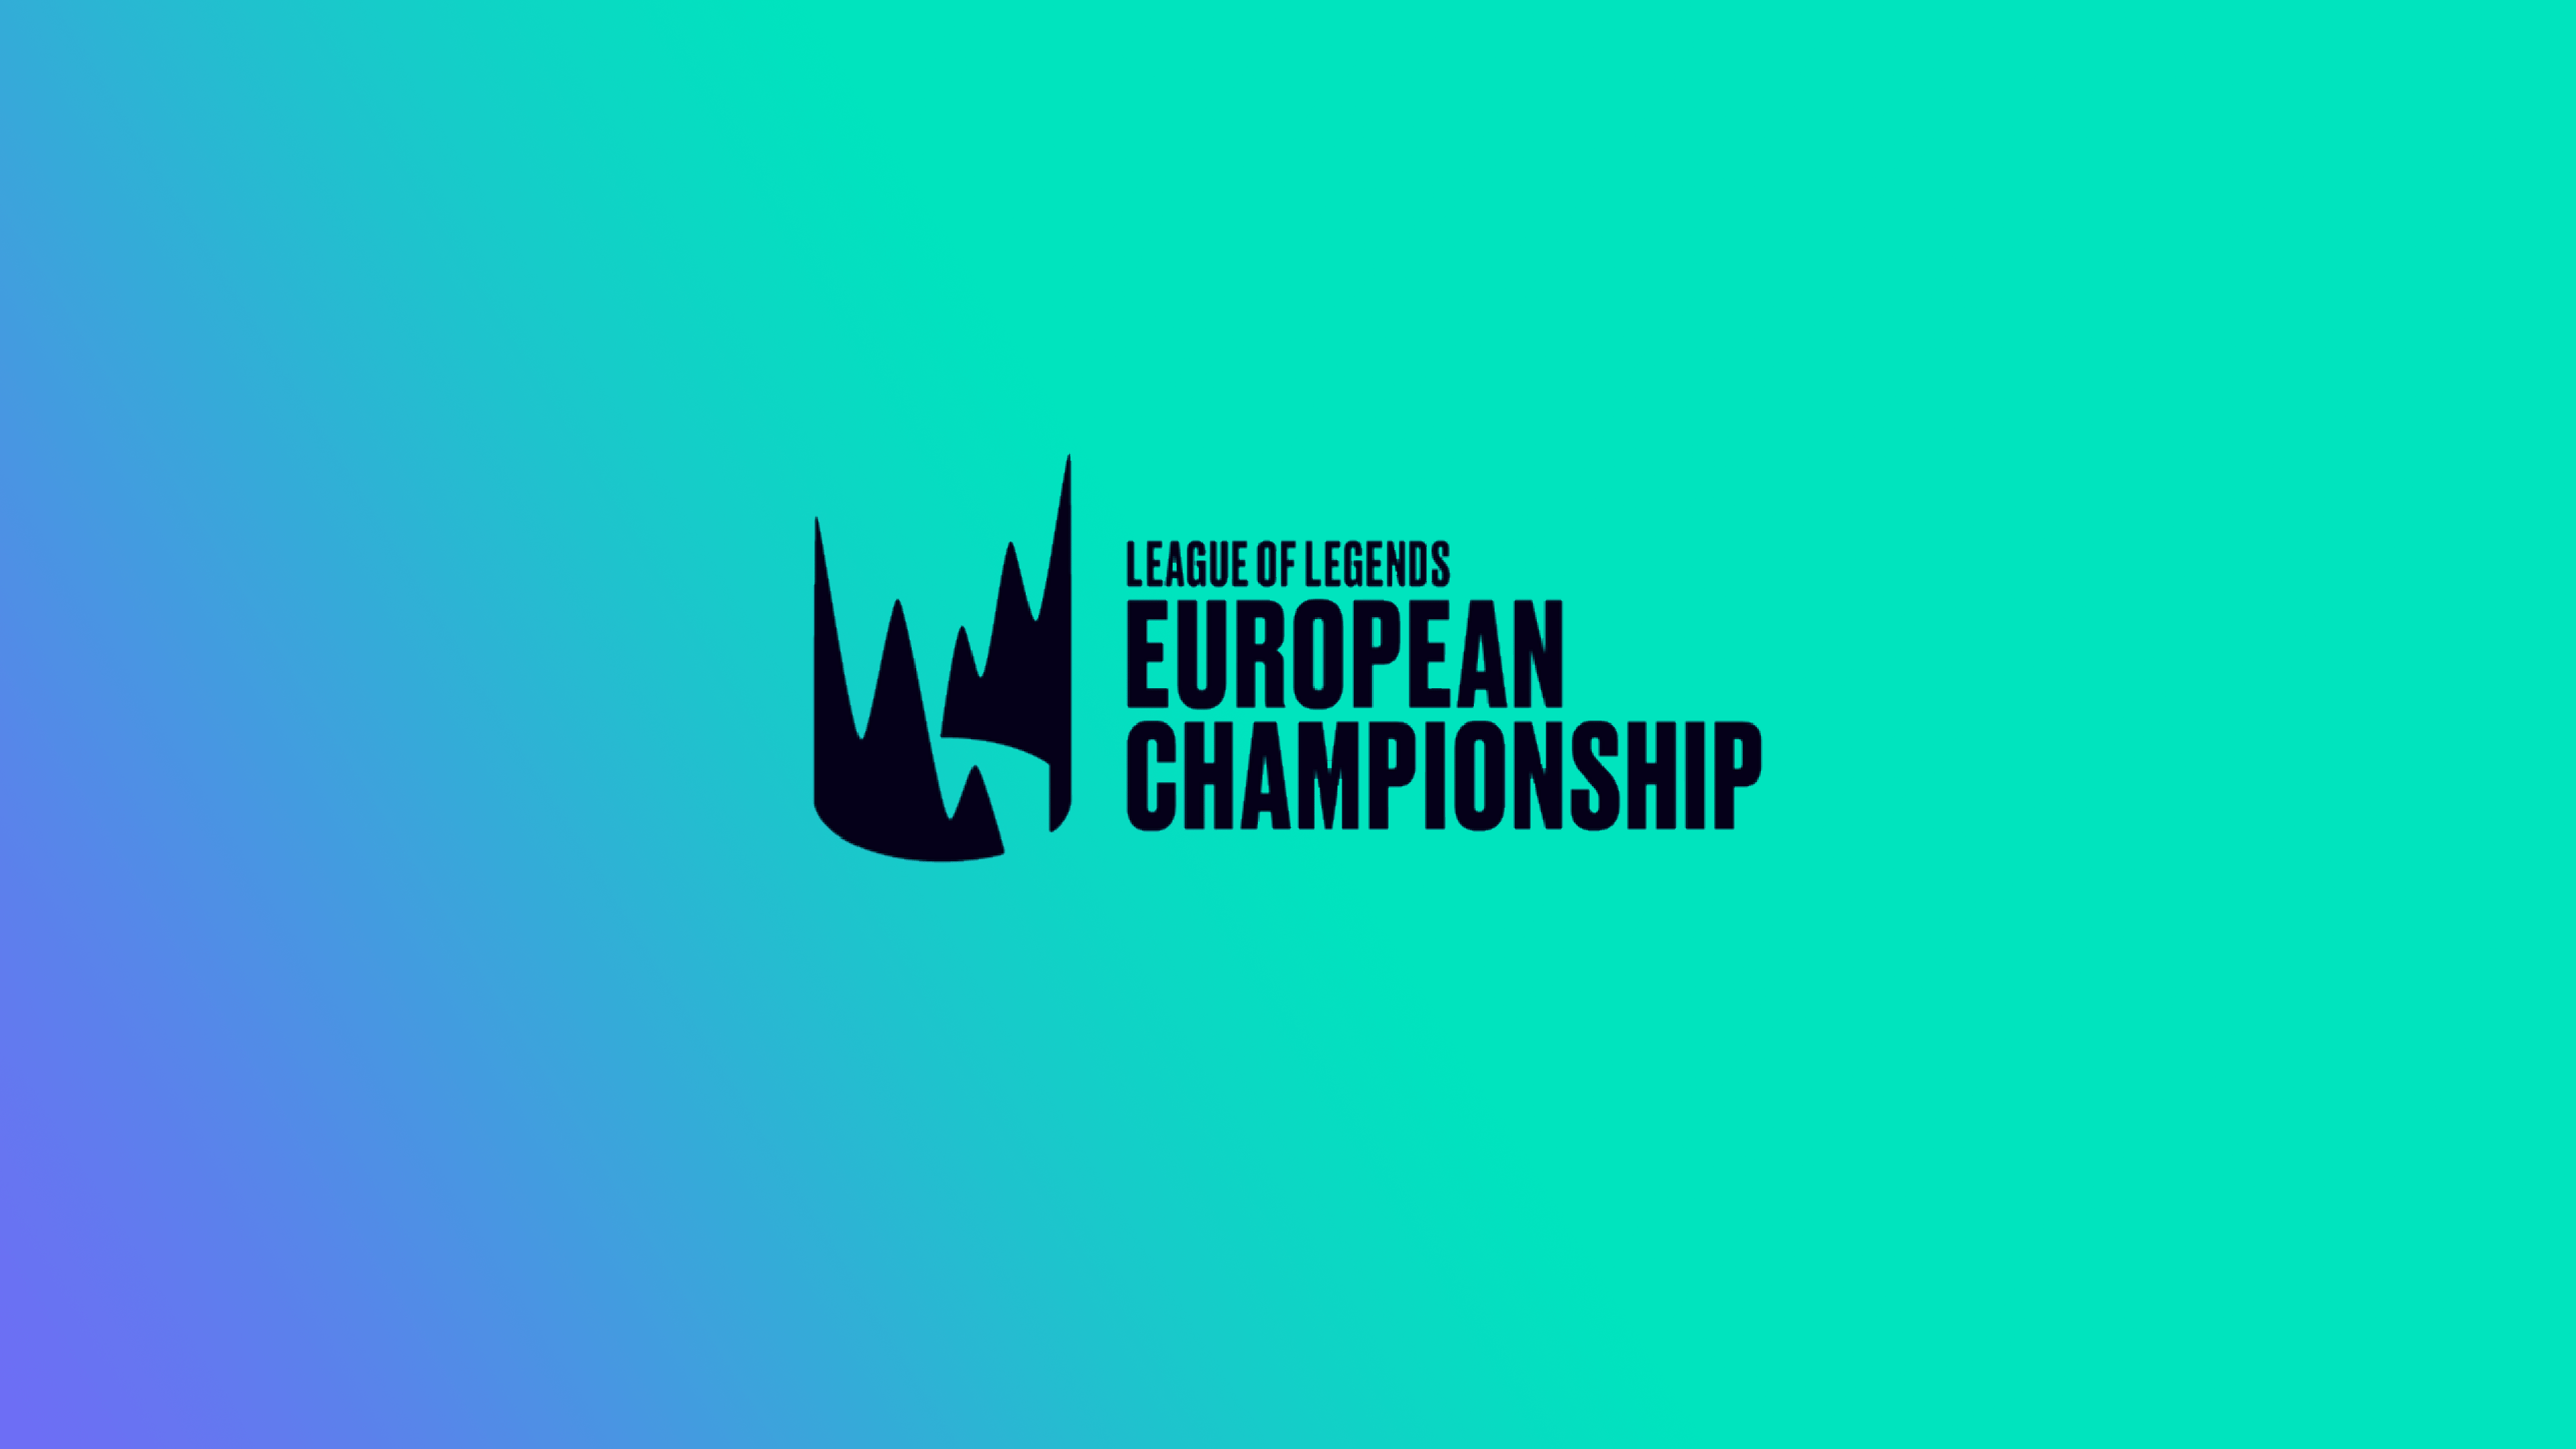 Week 8, Day 1 Overview, And Summary Of League European Championship 2020 By Scairtin